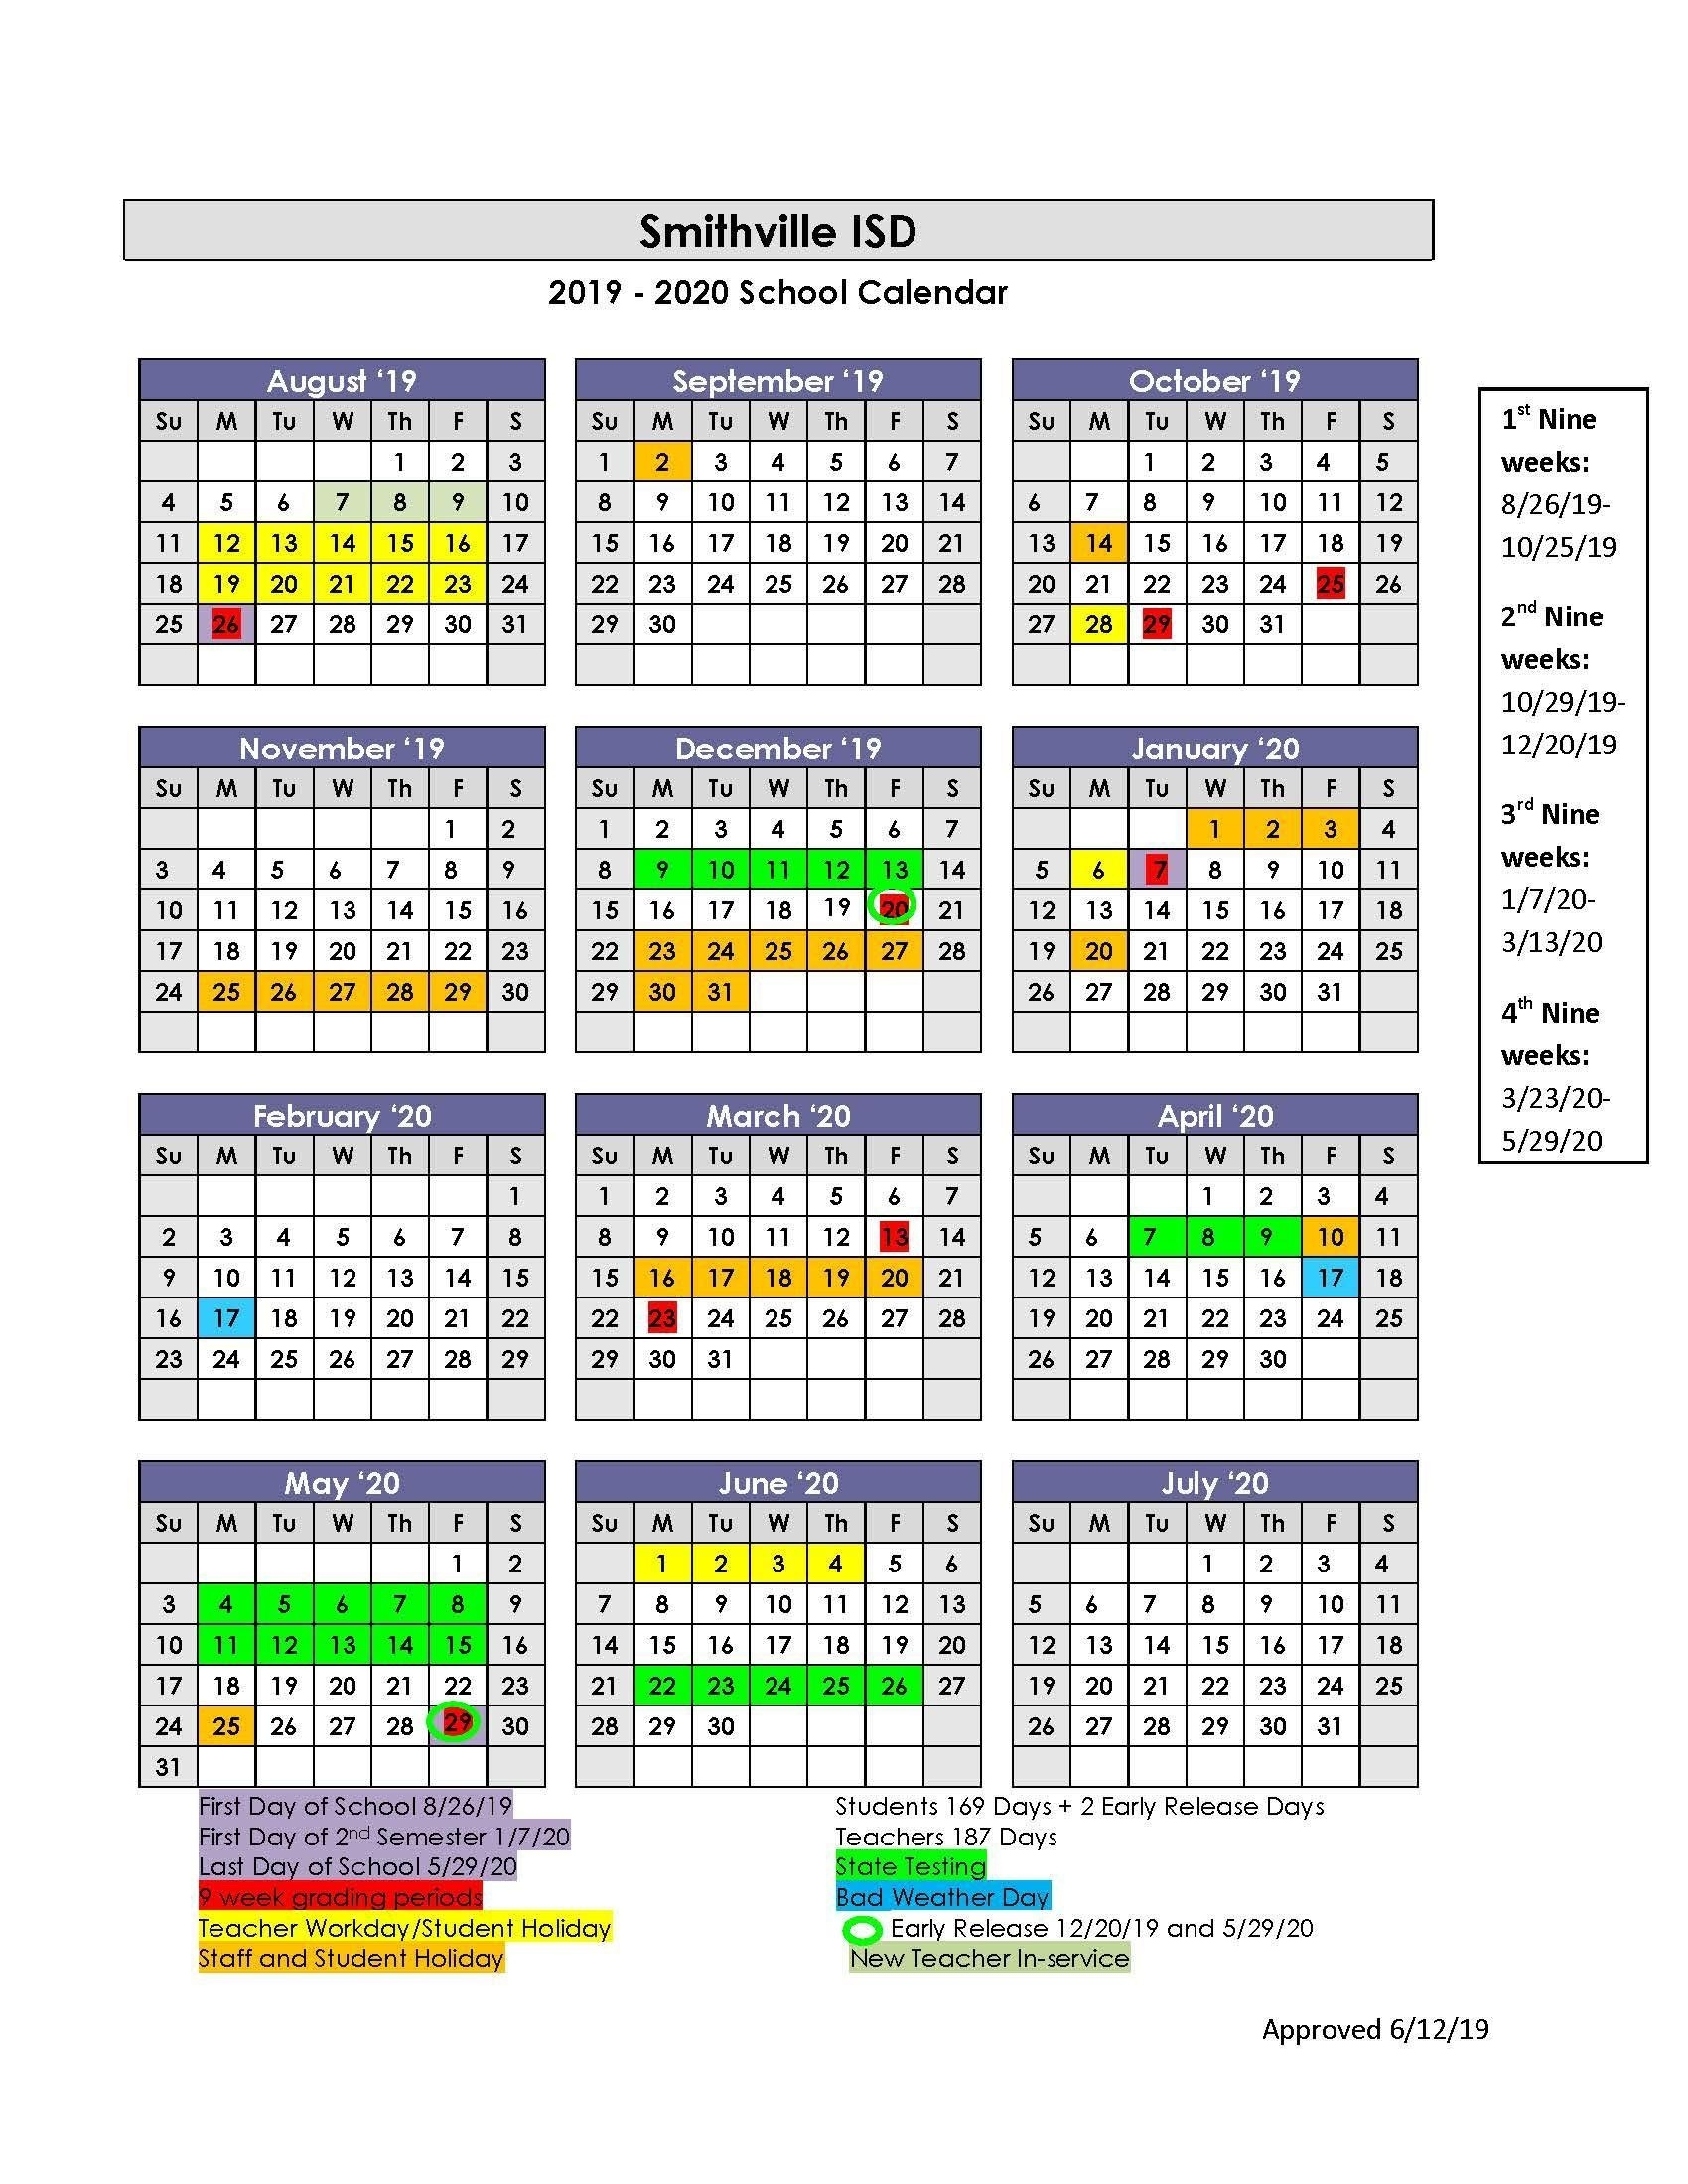 Sisd Academic Calendar – School Board – Smithville Independent_Calendar School District 42